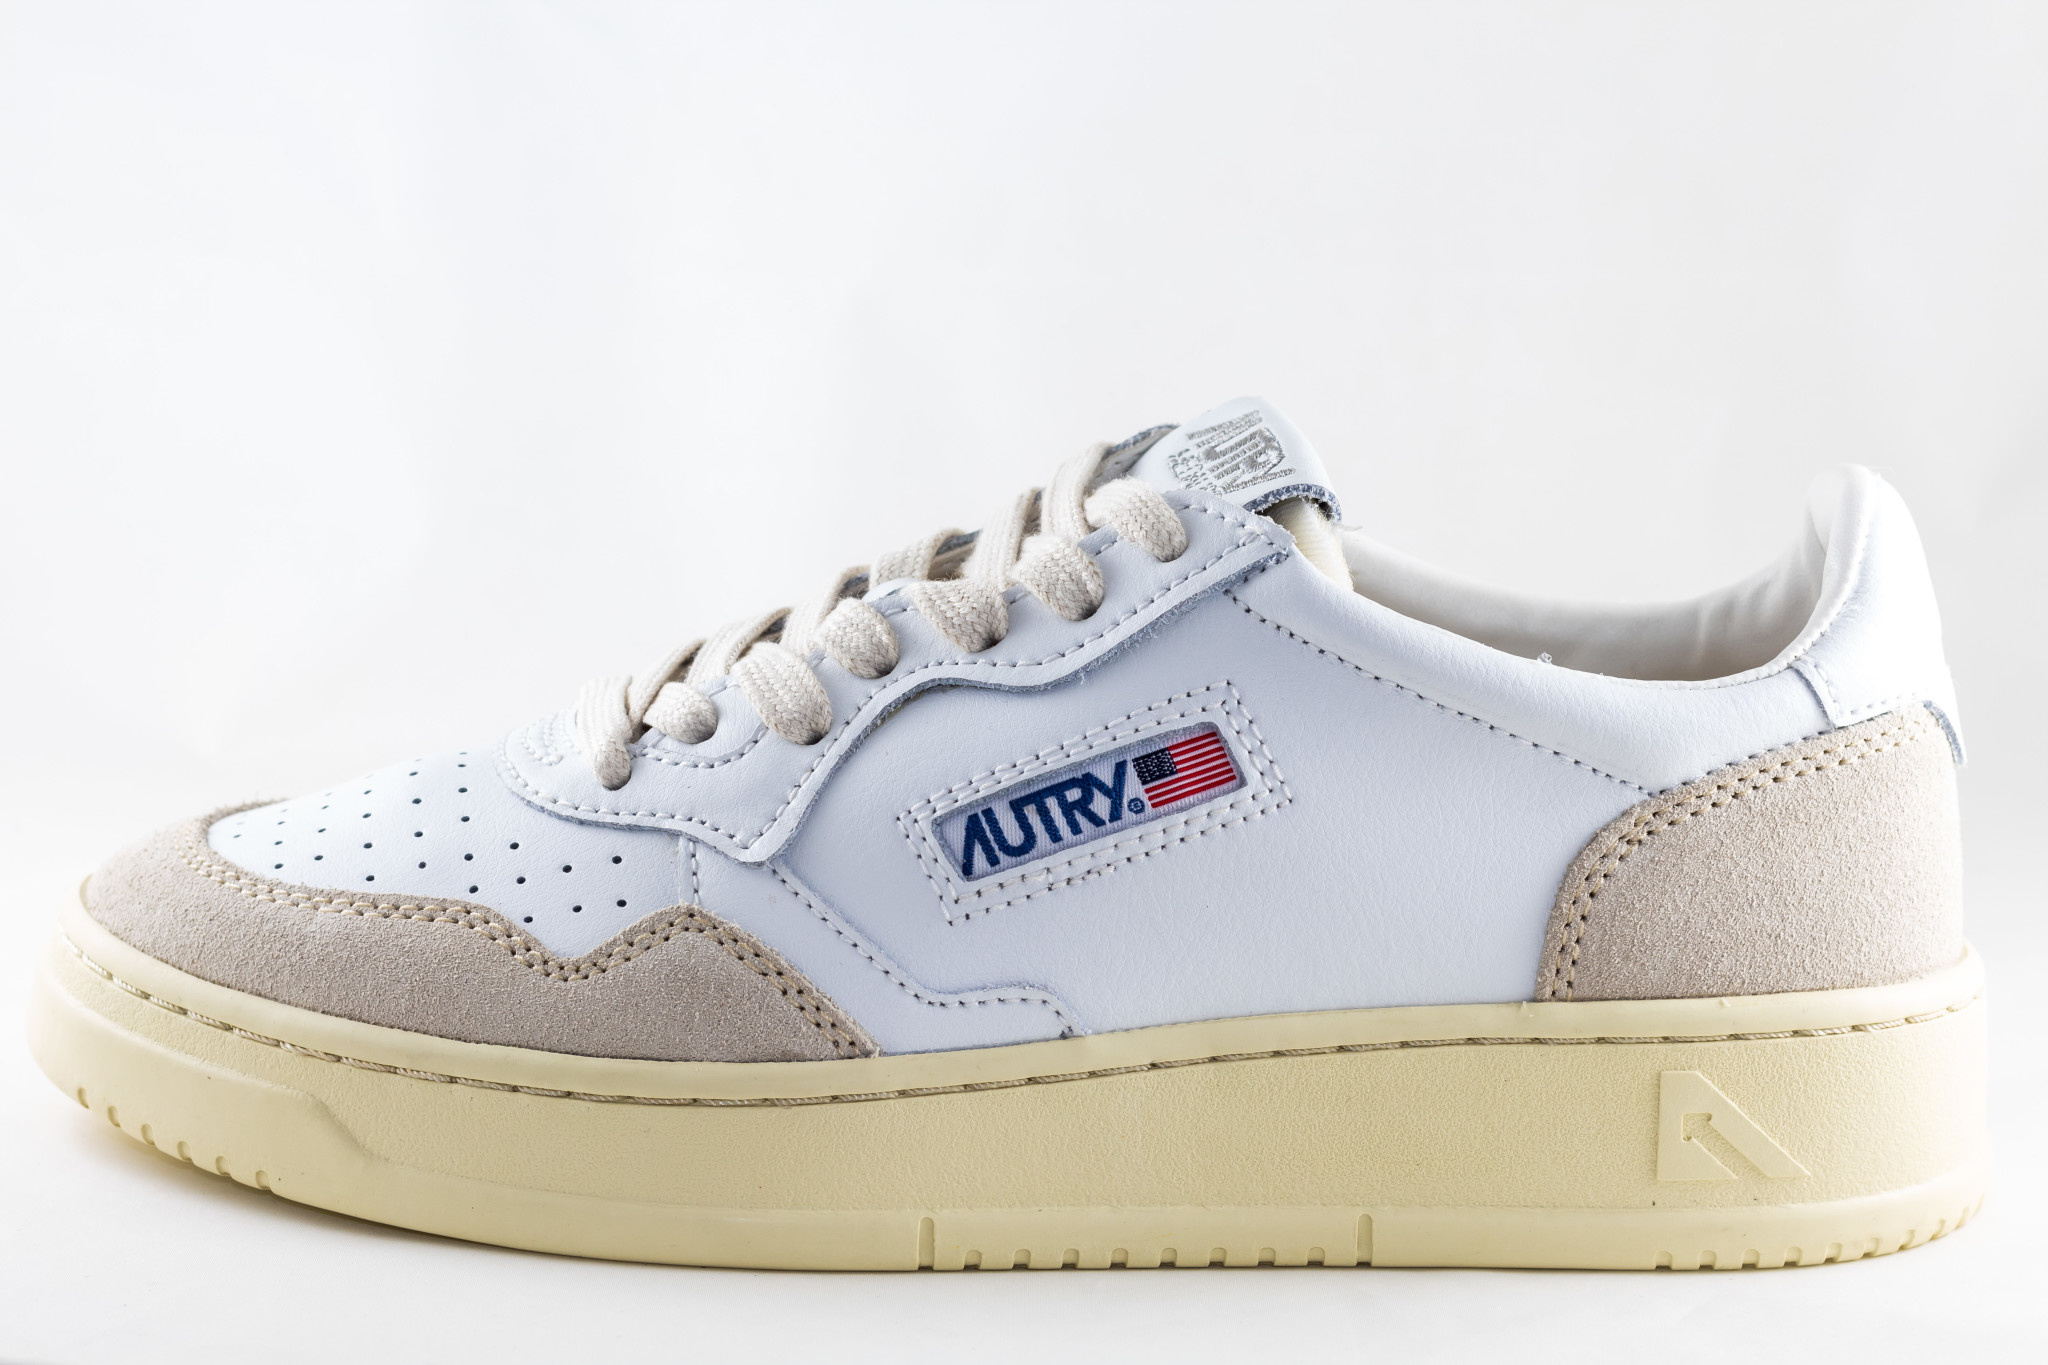 AUTRY AUTRY LOW WOMAN LEAT/ SUEDE White/ White